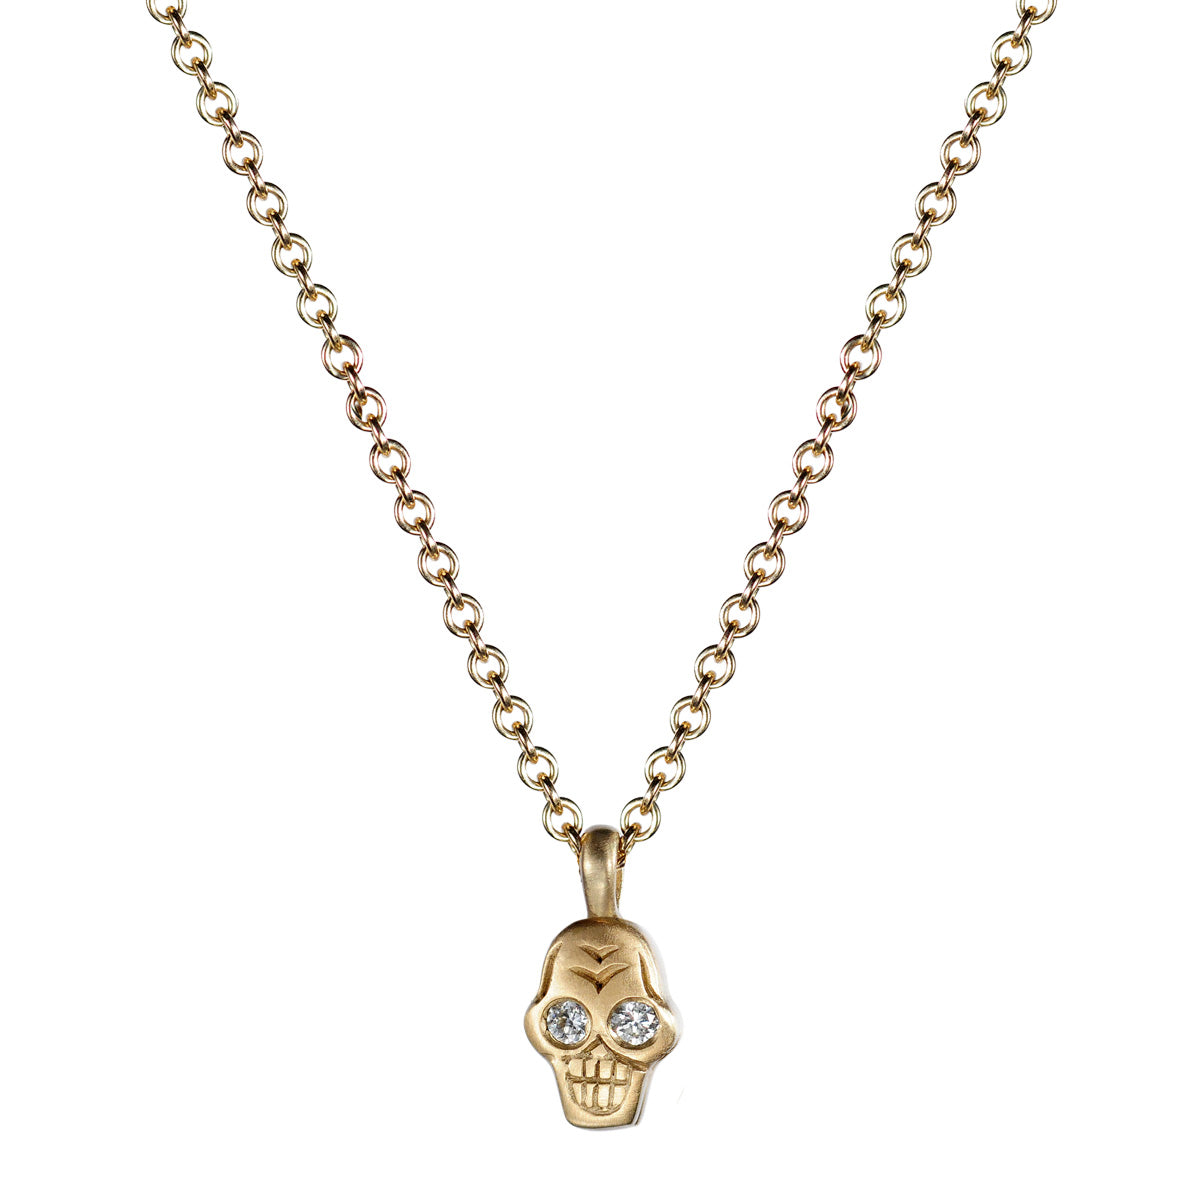 10K Gold Tiny Skull Pendant with Diamond Eyes